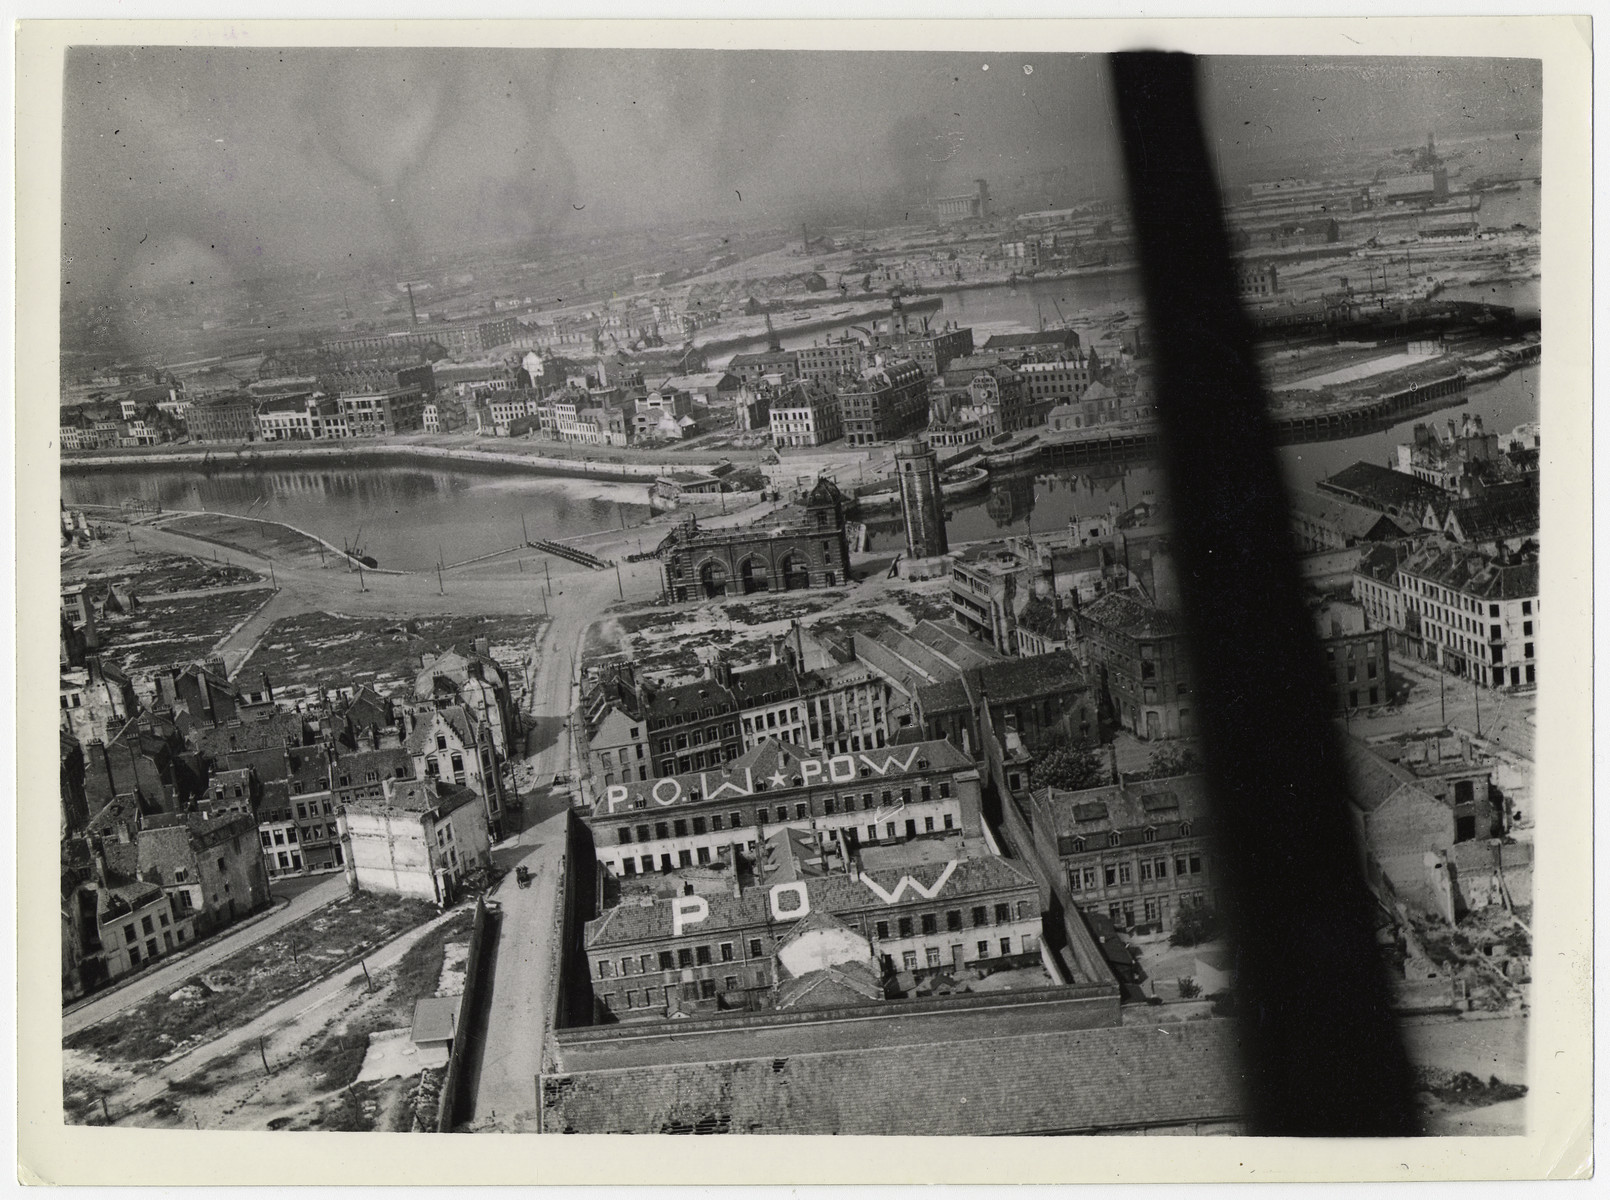 "British official aerial photograph of Dunkirk.  Original caption reads: ""An R.A.F official photographer flew over Dunkirk on 11.5.45 and took these air views of one of the last of the surrendering German outposts. Picture shows:- General view over the town of Dunkirk showing prisoner of war signs painted on the roofs of buildings."""